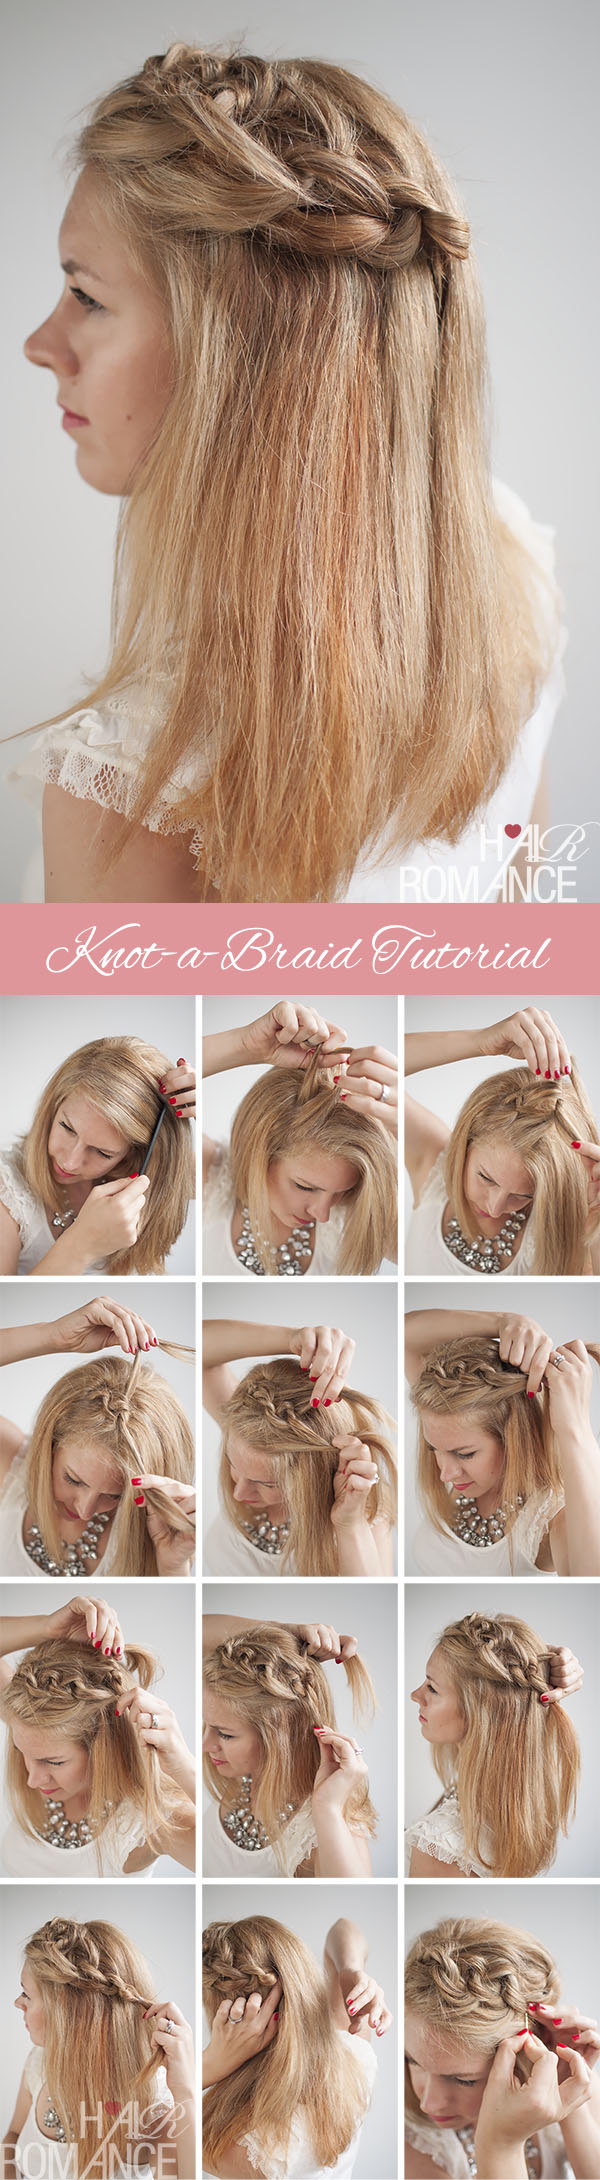 Hair Romance - Knot a braid hairstyle tutorial